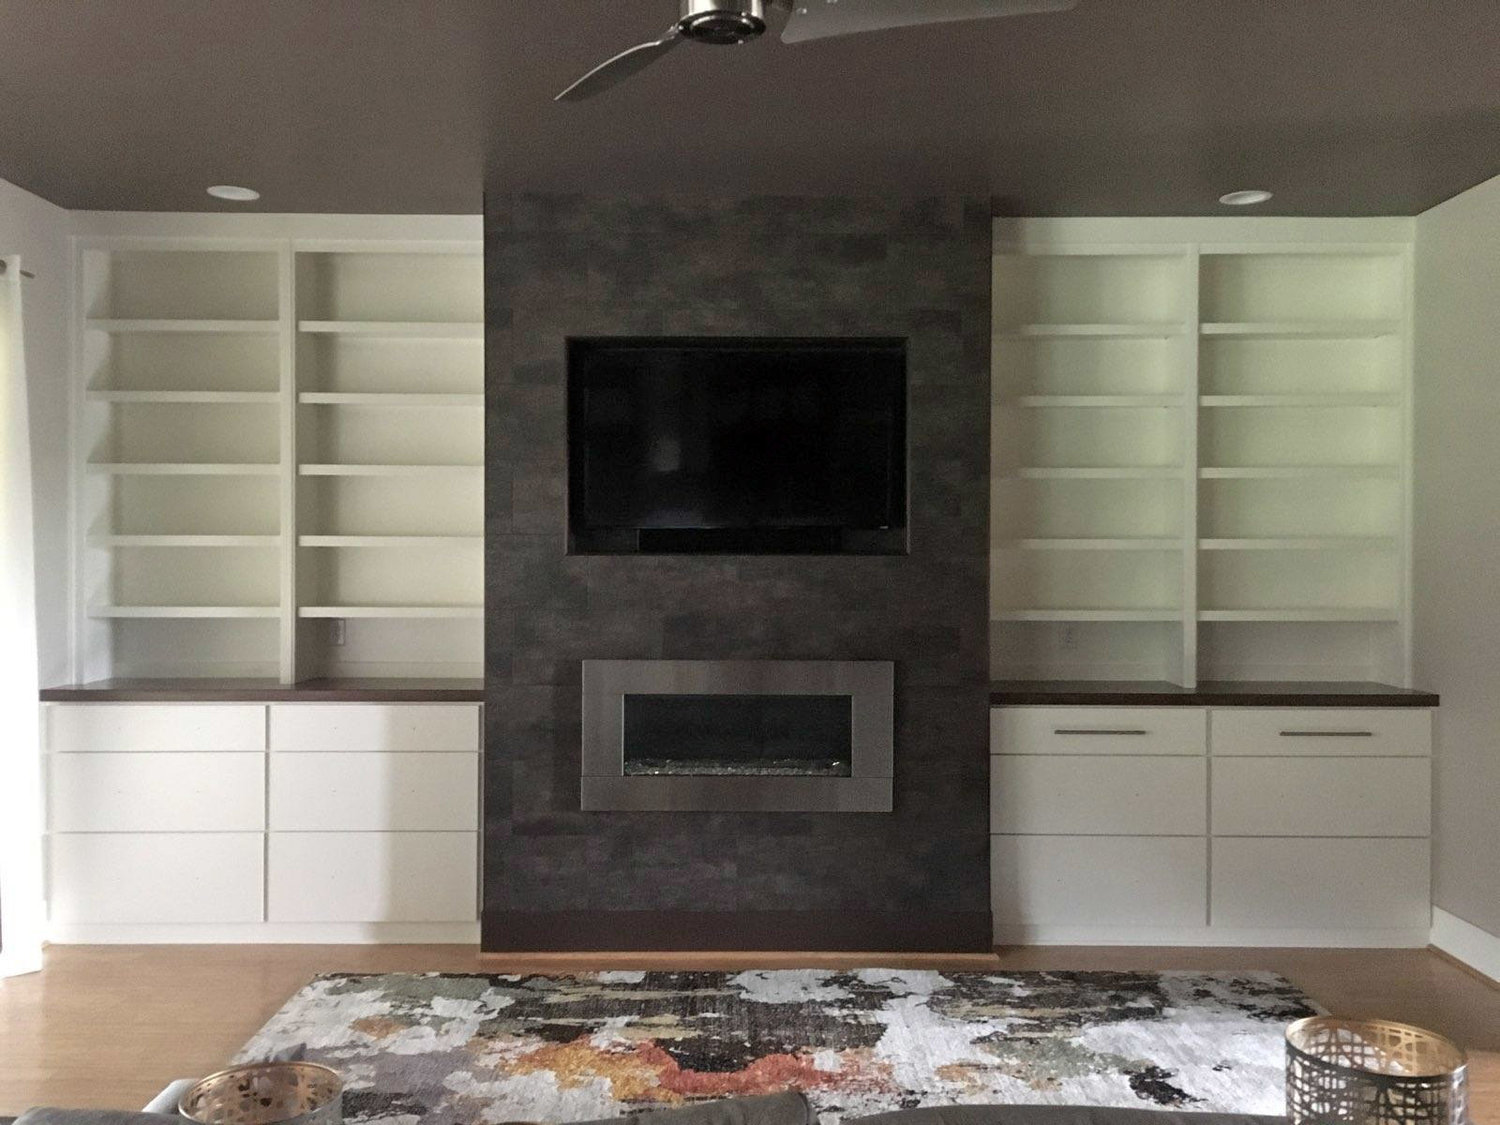 Fireplace Built-Ins with Adjustable Shelves, Slab Drawers, Stain Countertops, and Crown